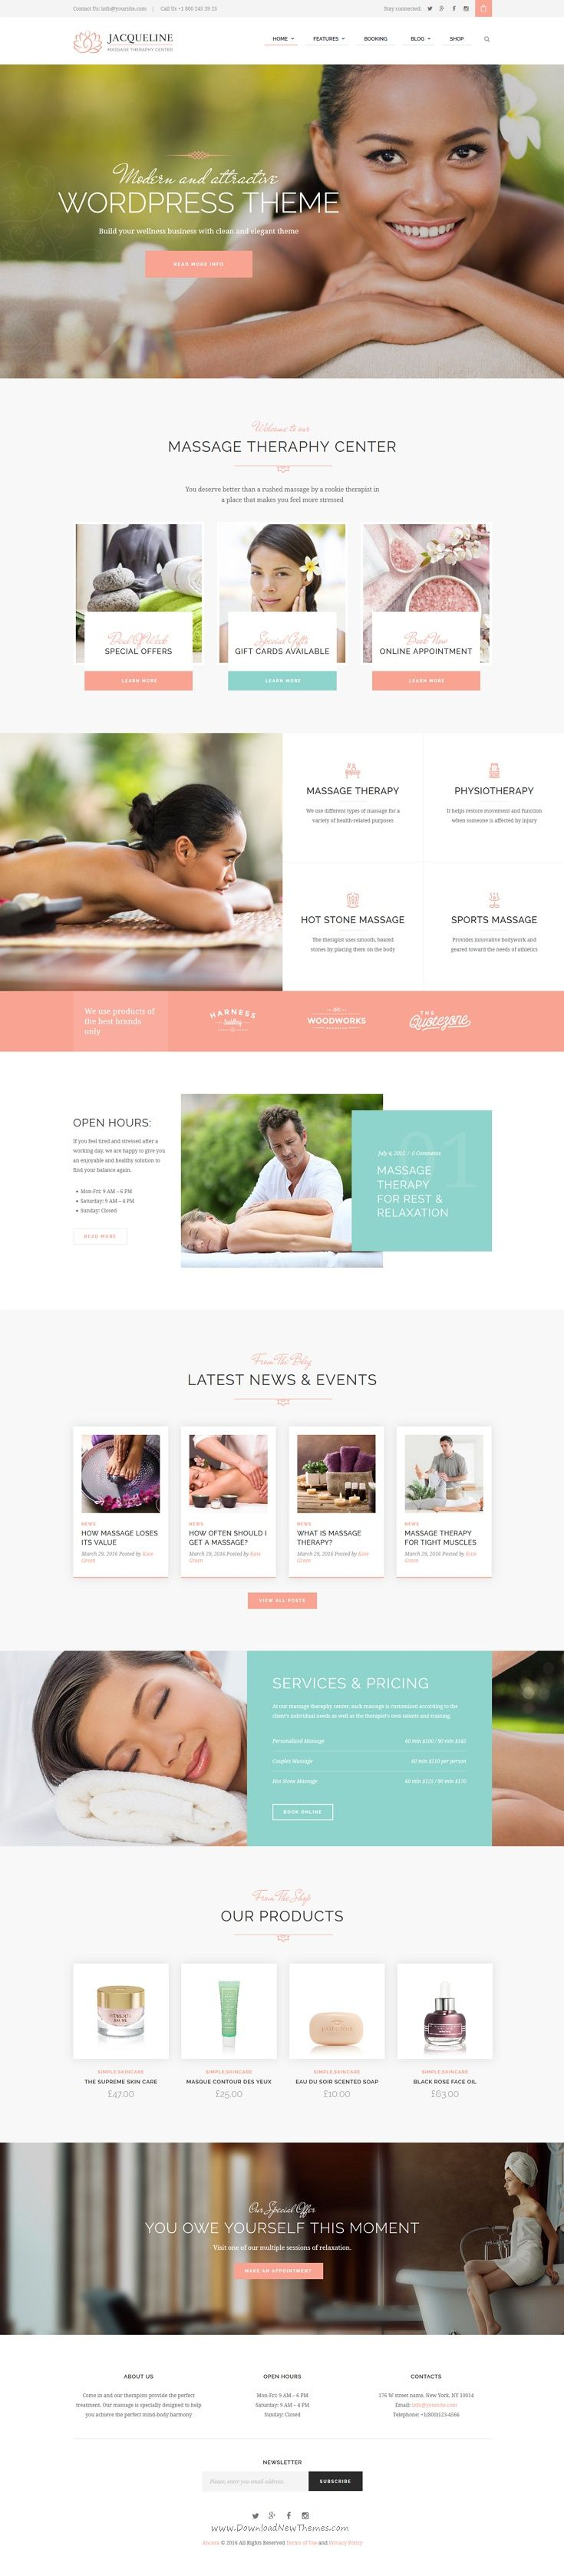 Cool 010 Editor Templates Thin 1300 Resume Government Samples Selection Criteria Flat 18th Birthday Invitation Templates 1st Job Resume Template Youthful 2014 Printable Calendar Template Red24 Hour Timeline Template 25  Best Ideas About Salon Website On Pinterest | Website Design ..